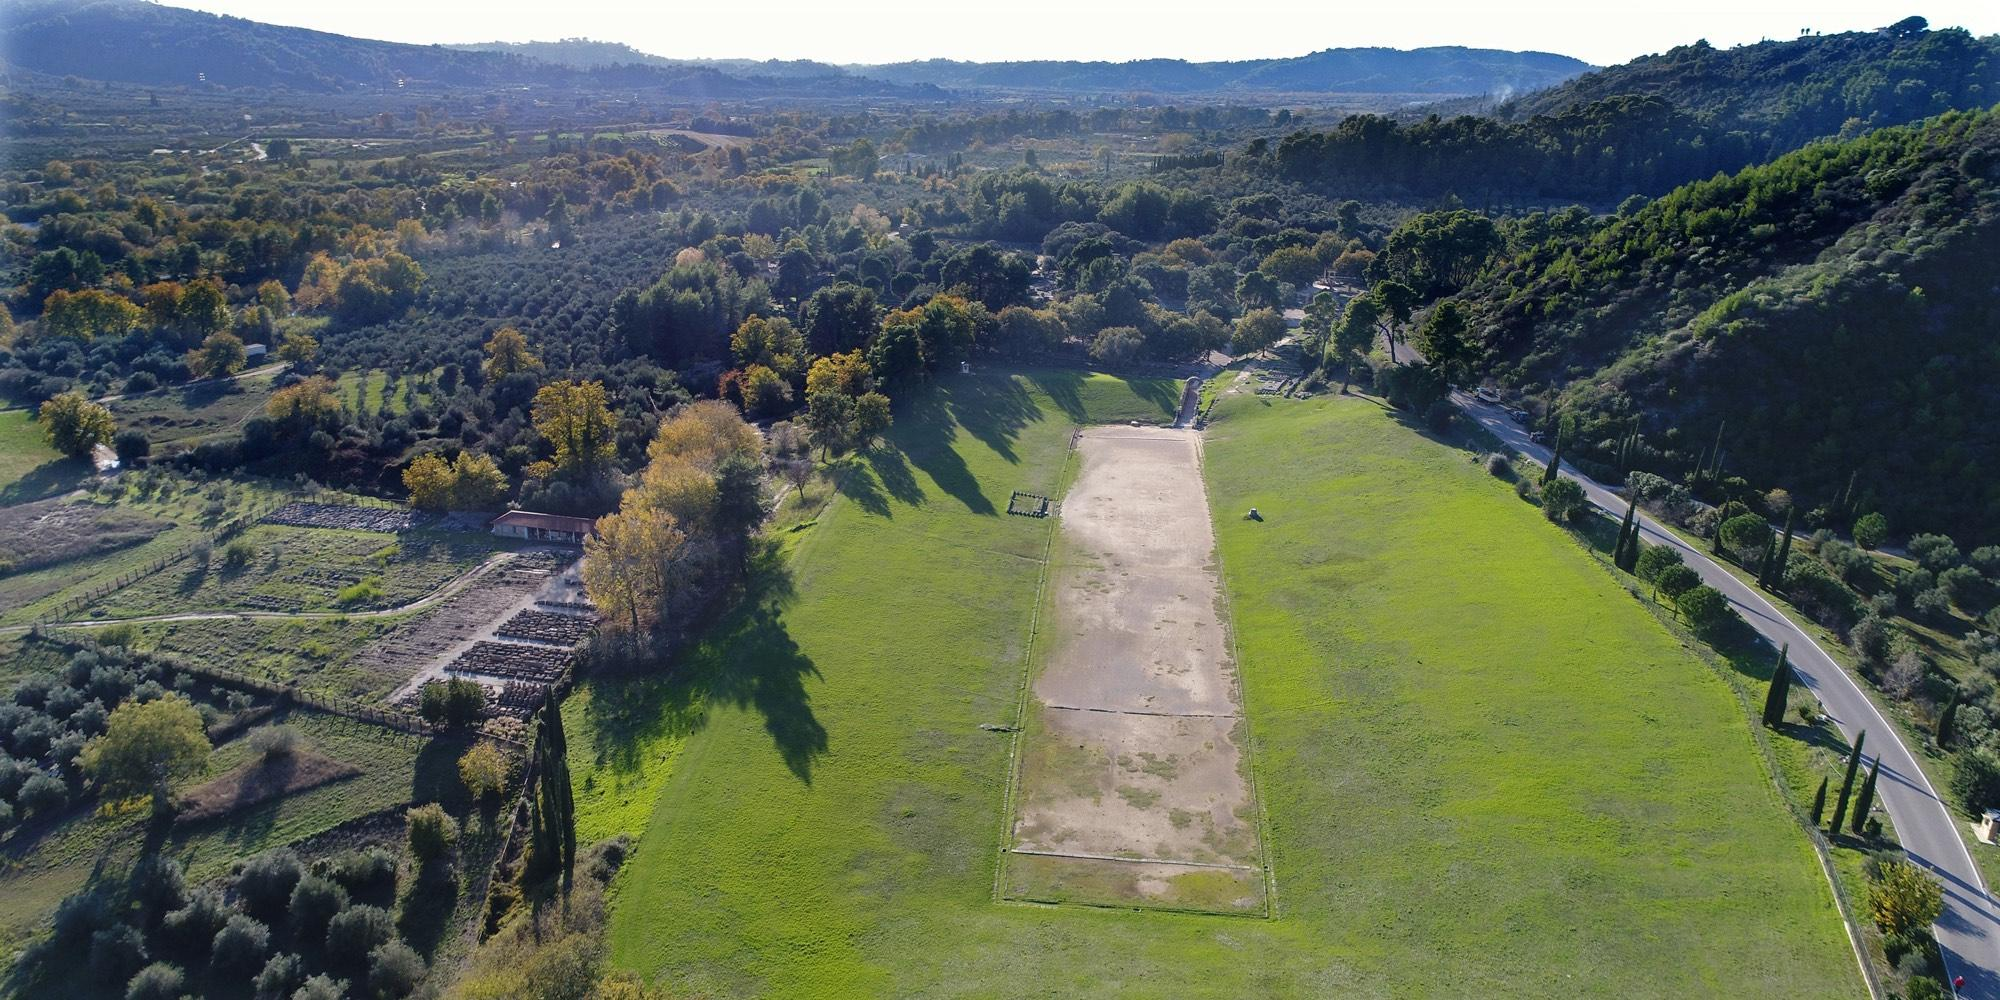 The Stadium of Olympia staged all the athletic competitions of the ancient Olympic Games. Only the chariot and horse races were hosted in the adjacent Hippodrome. – © Hellenic Ministry of Culture and Sports / Ephorate of Antiquities of Ilia